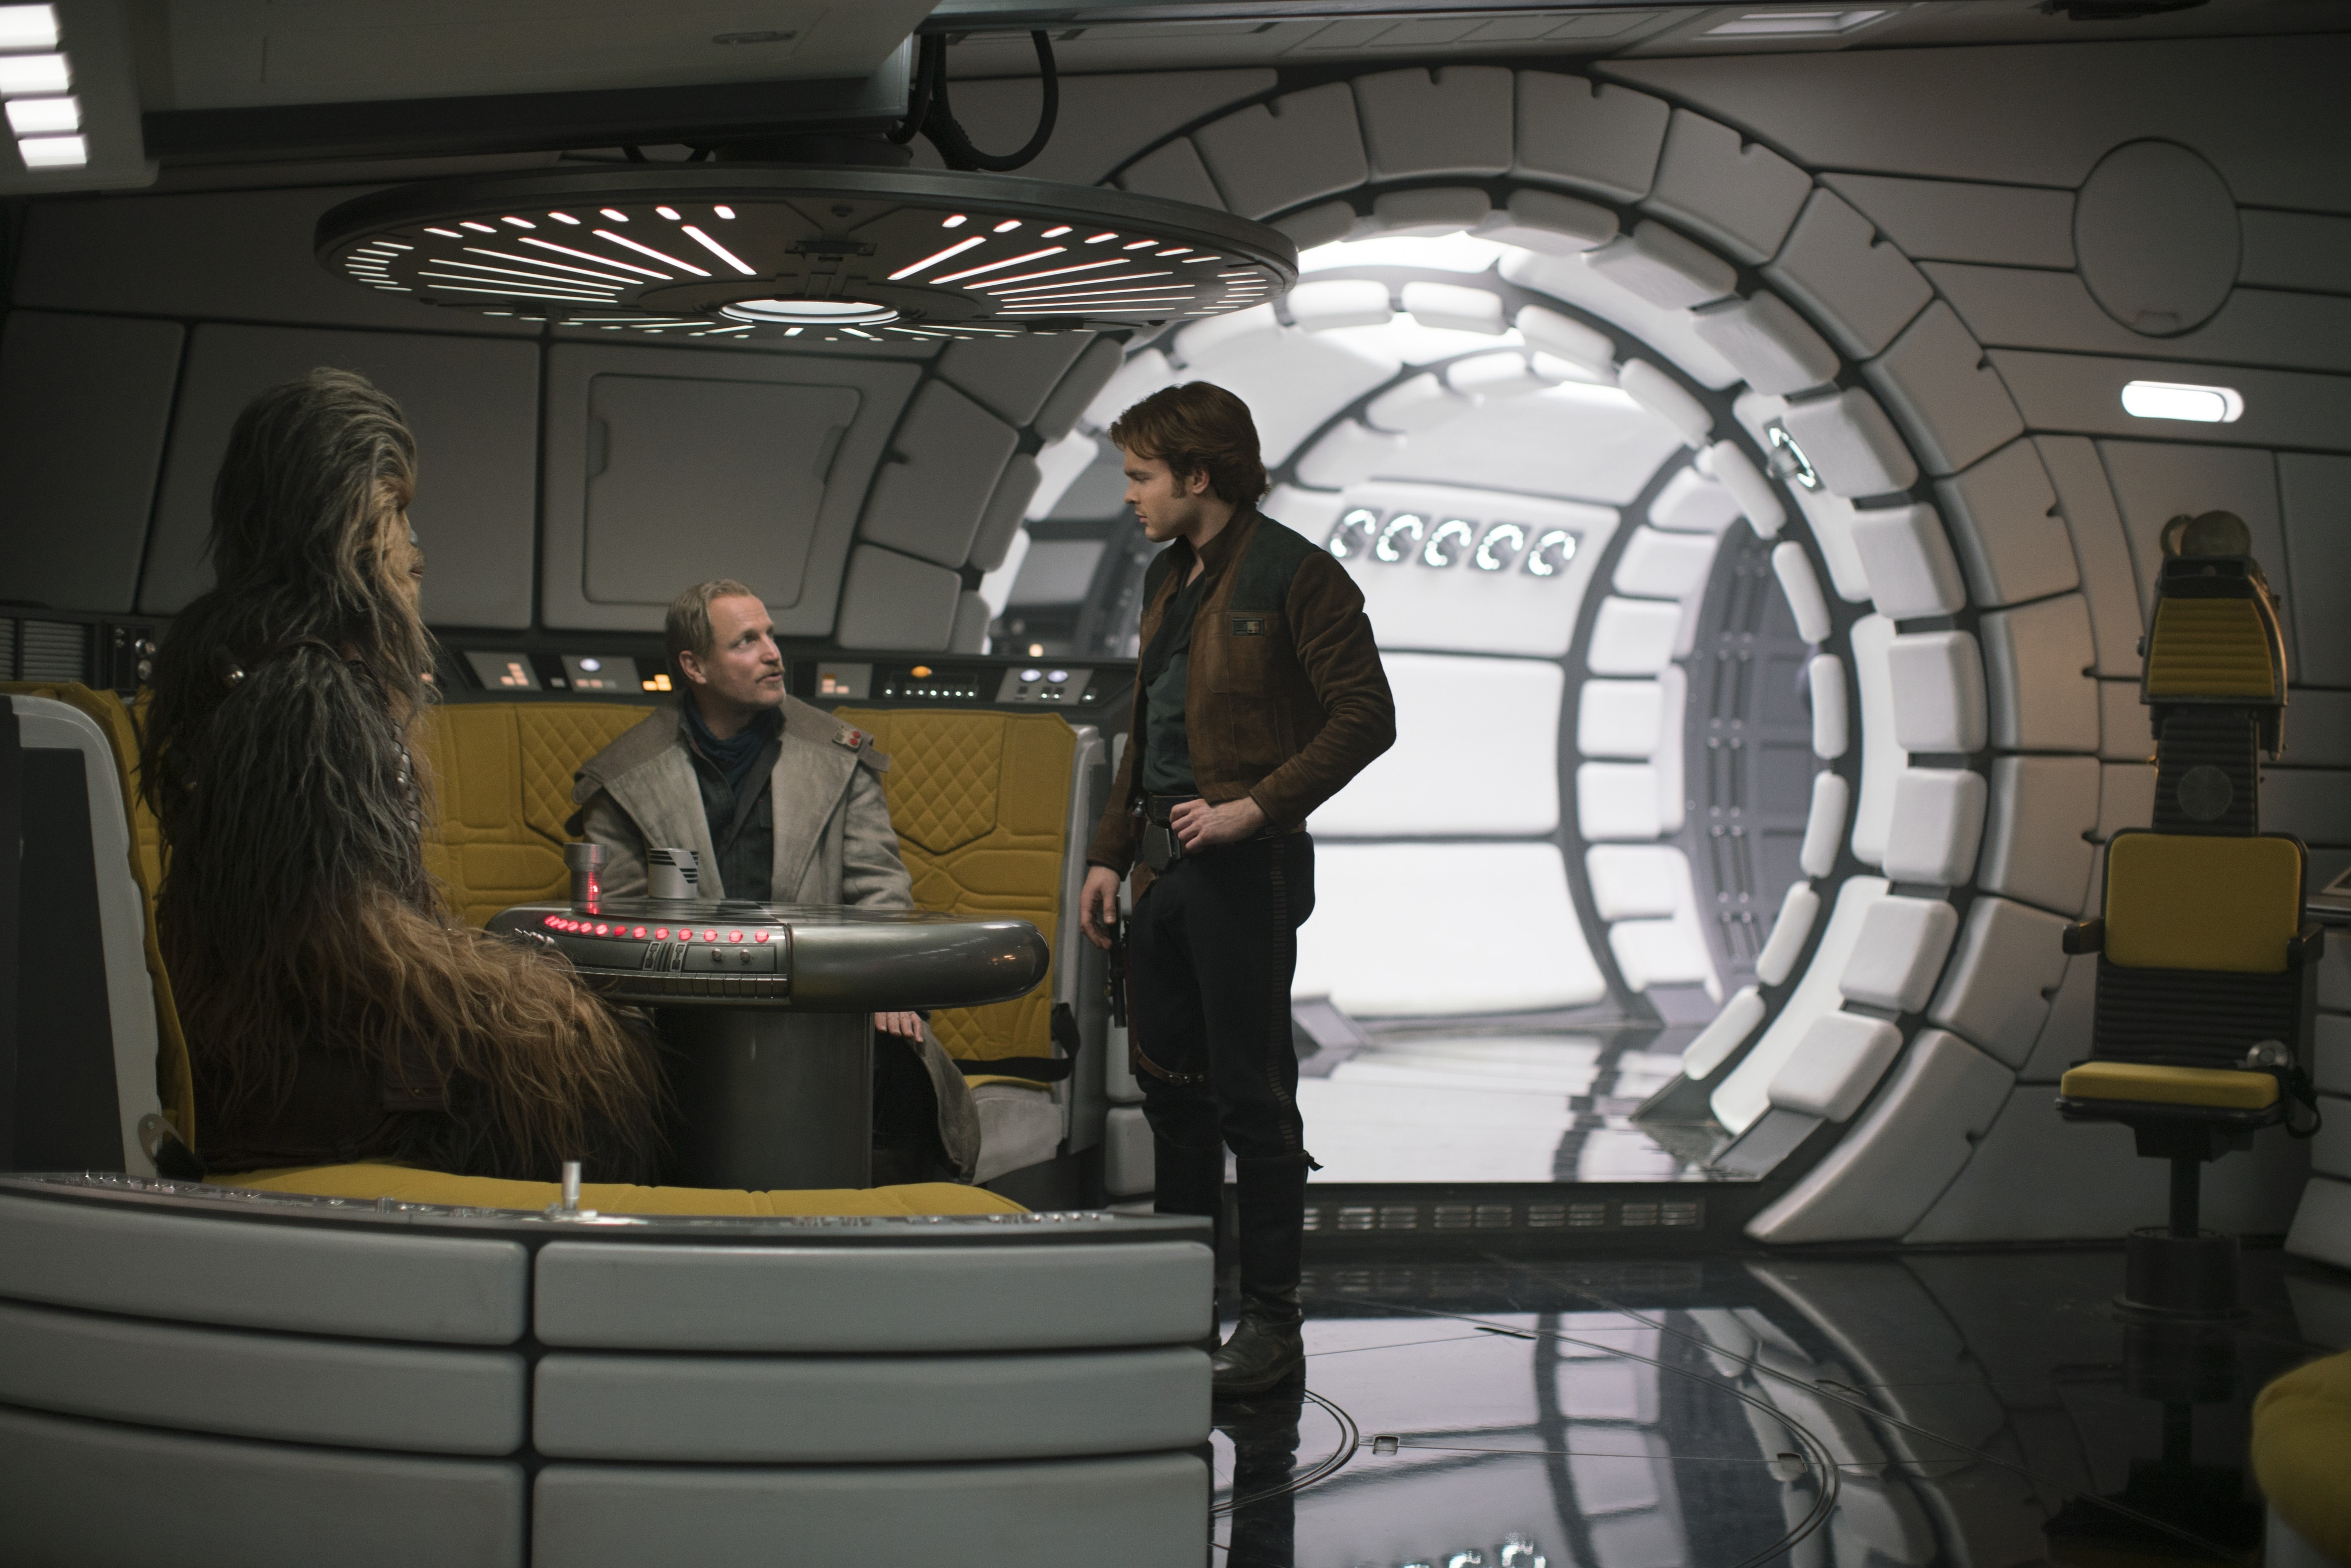 Han, Chewie on the Falcon